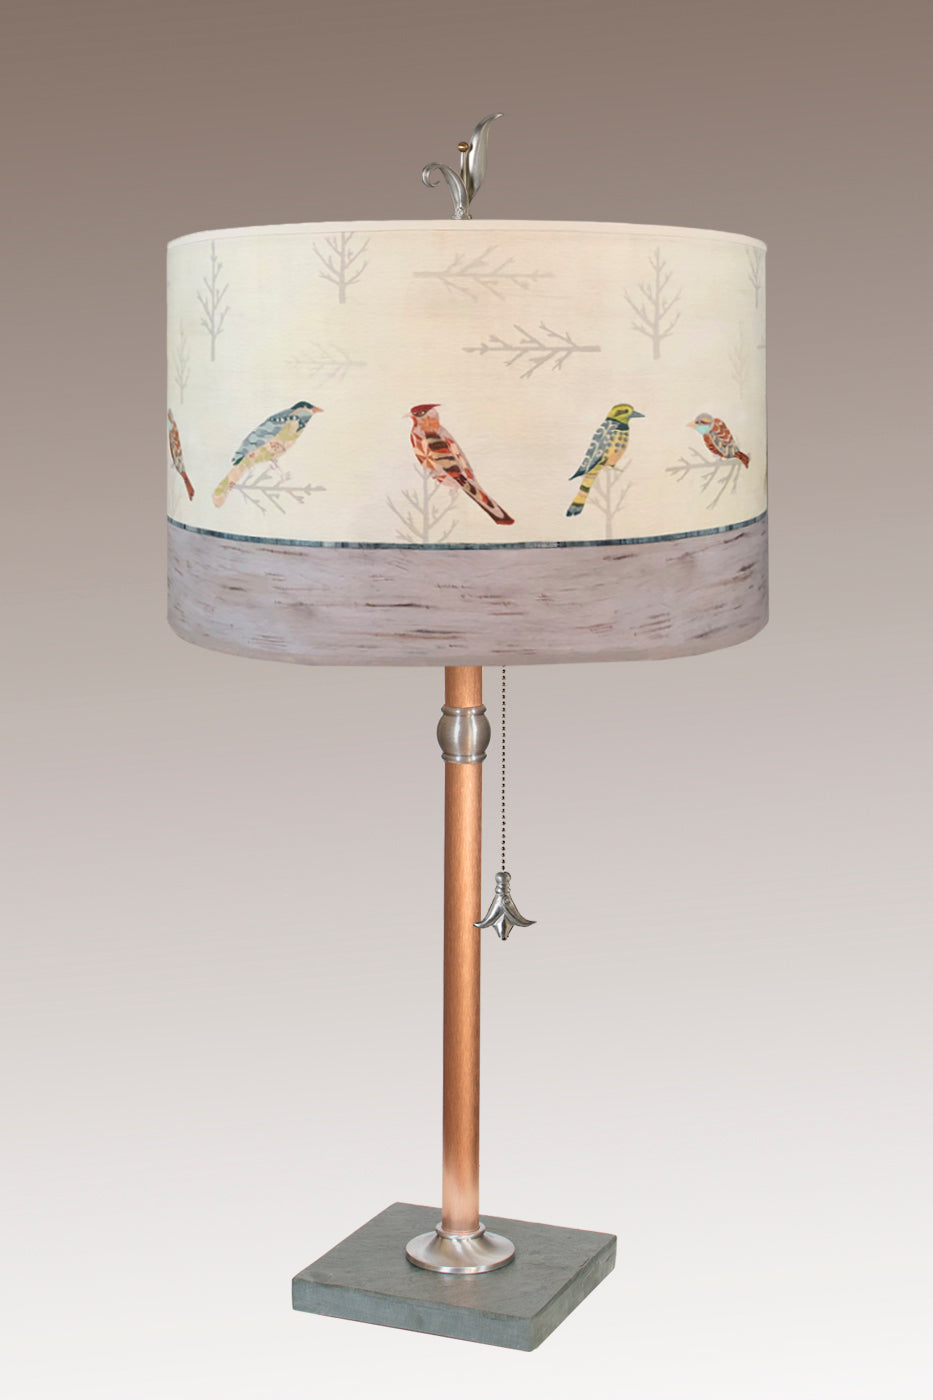 Copper Table Lamp with Large Drum Shade in Bird Friends